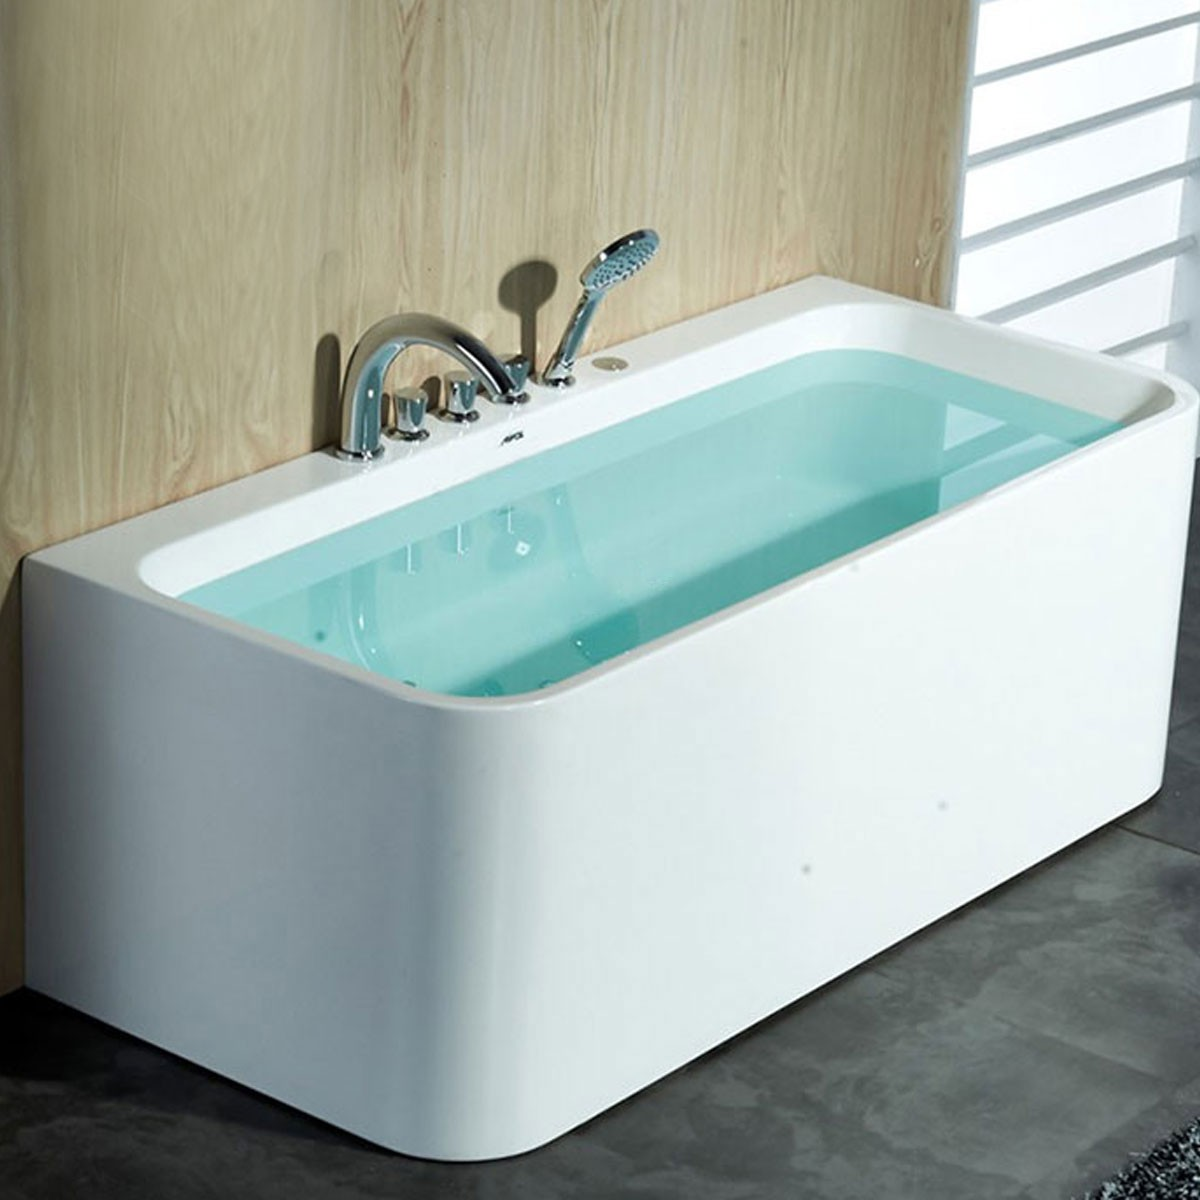 59 In Back to Wall Freestanding Bathtub with Drain - Acrylic White ...